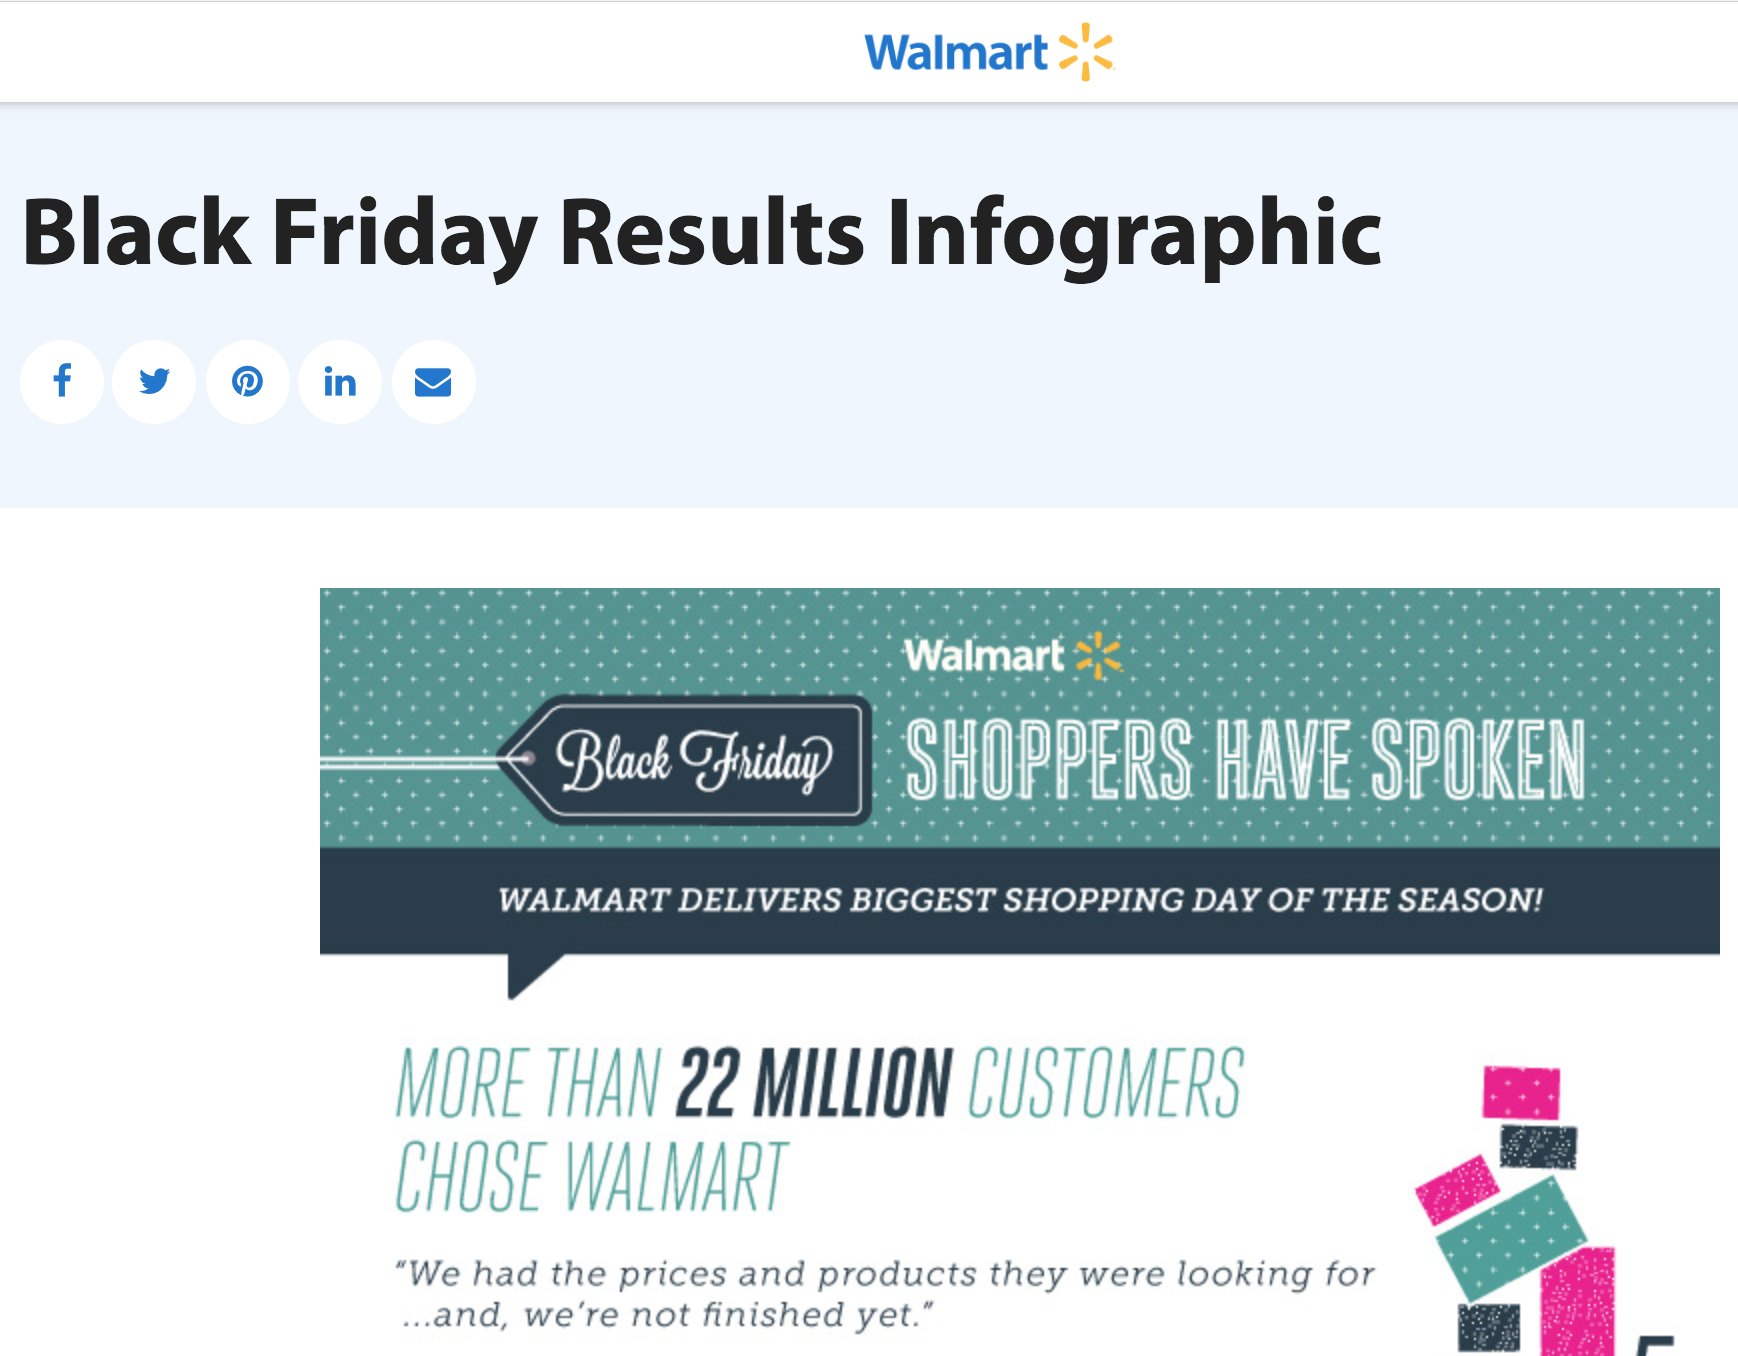 Screenshot showing infographic about black friday sales